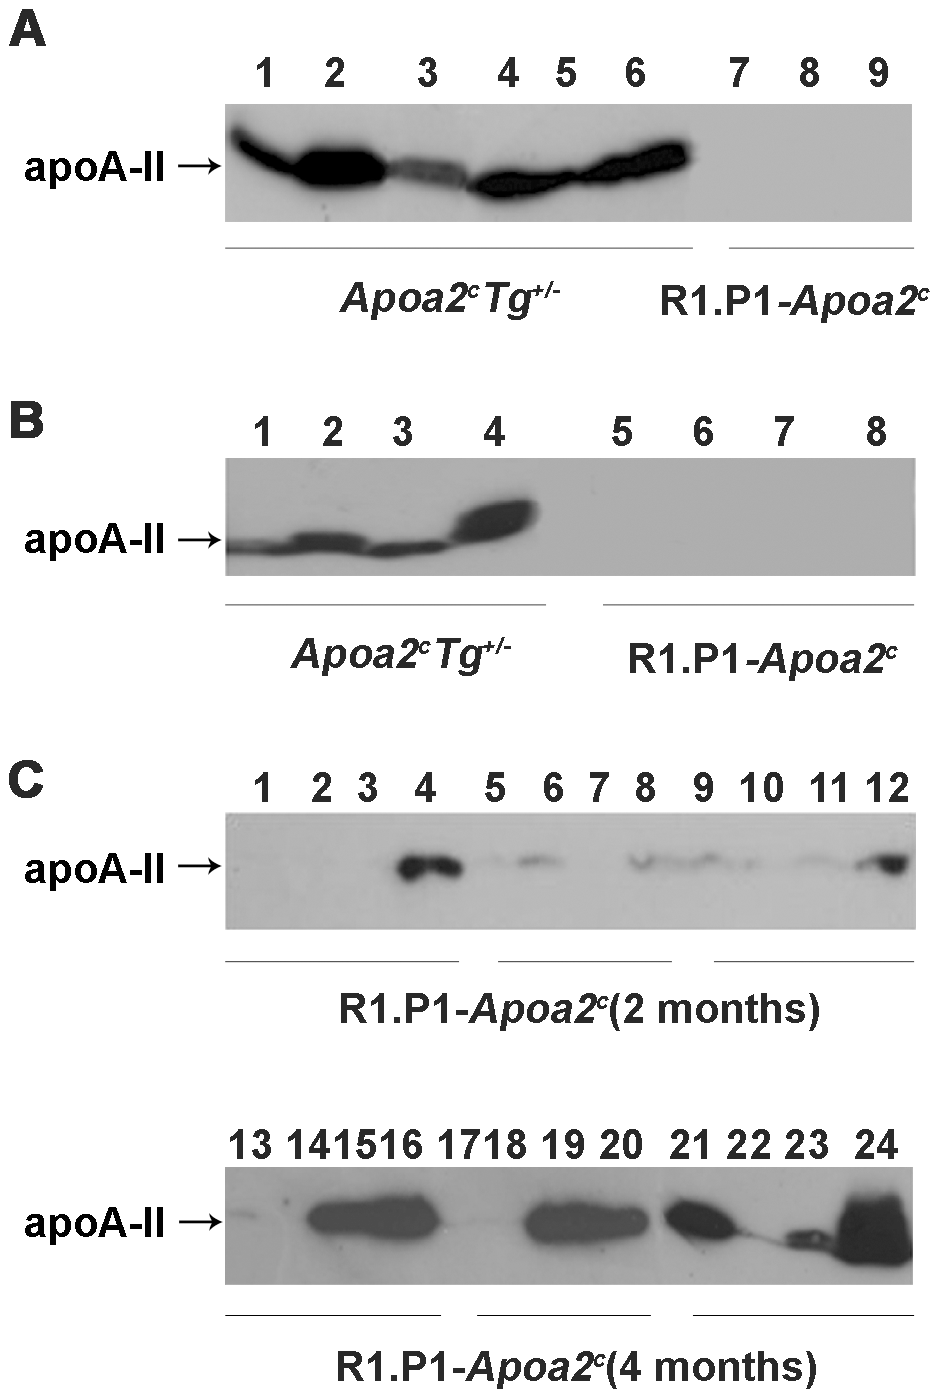 ApoA-II protein detected in amyloid fibril fractions isolated from various muscles.